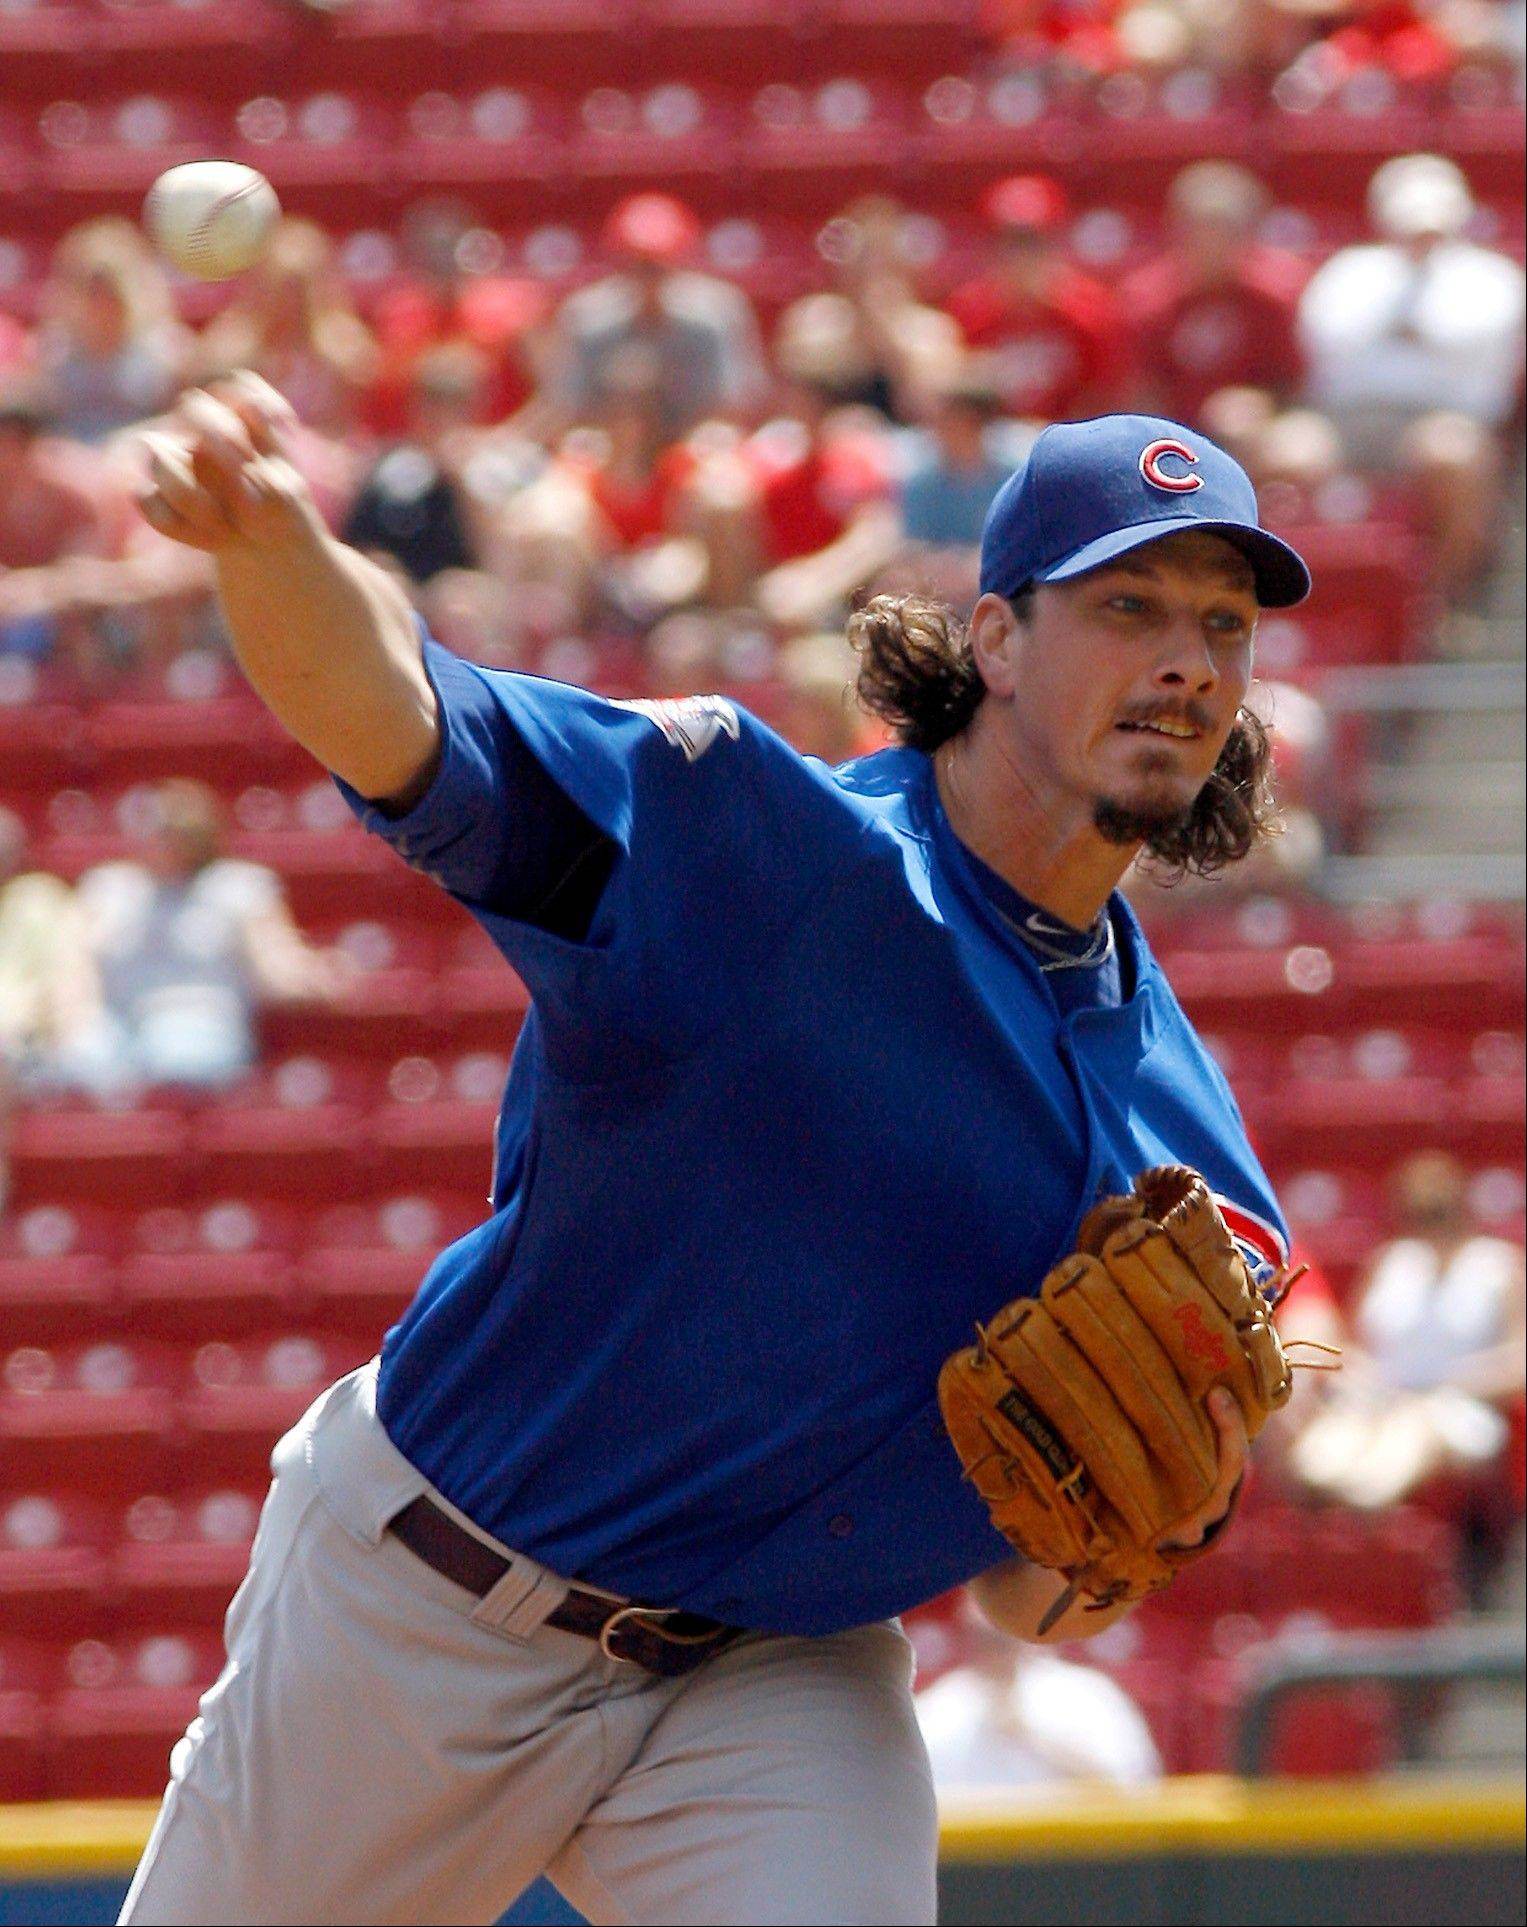 Cubs starting pitcher Jeff Samardzija figures to come to spring training next year trying to win the job of opening-day starter.